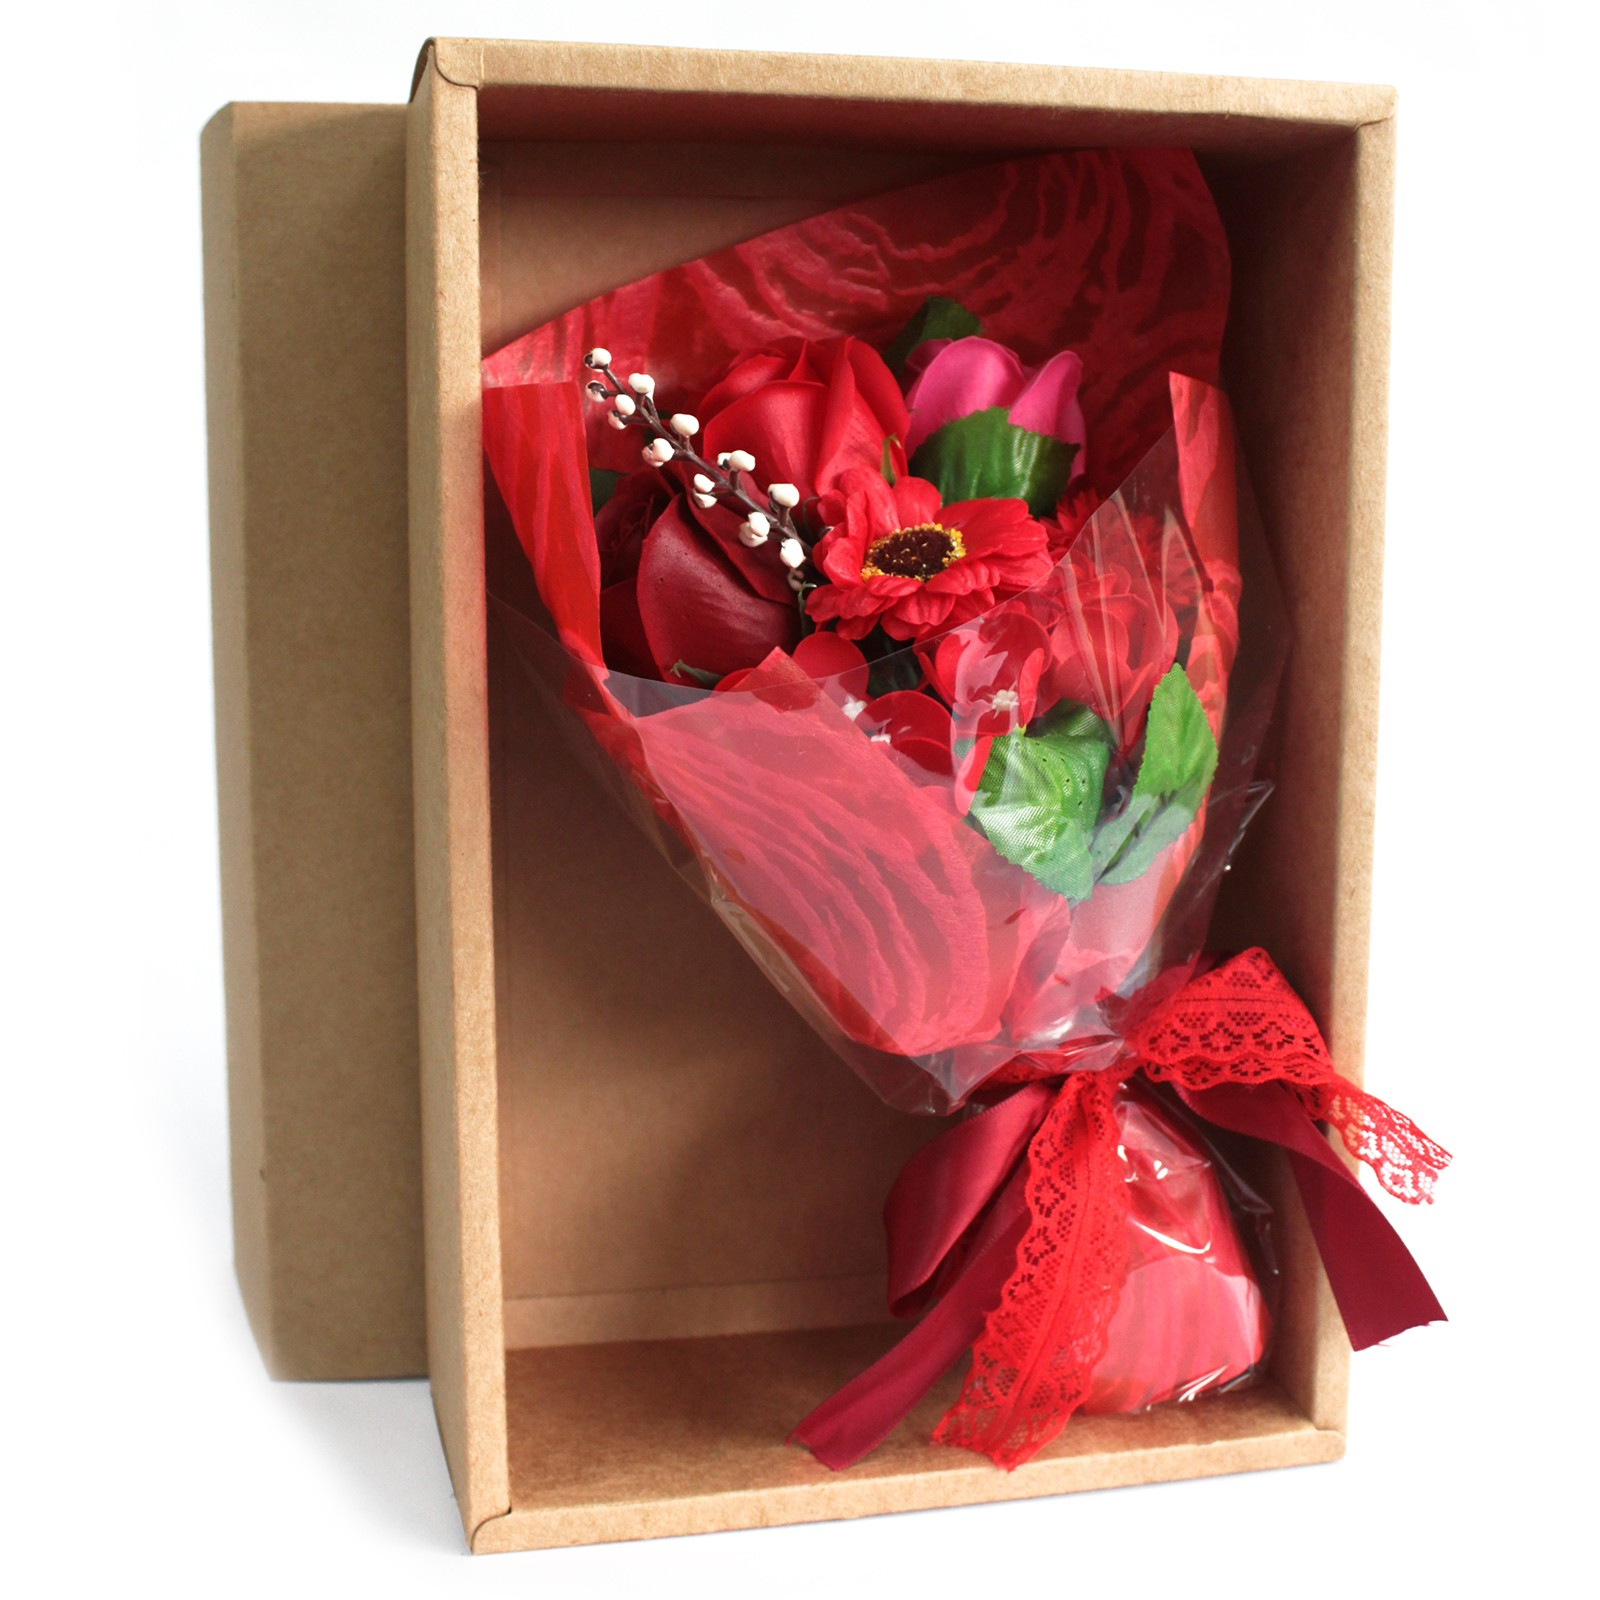 Boxed Hand Soap Flower BouquetRed